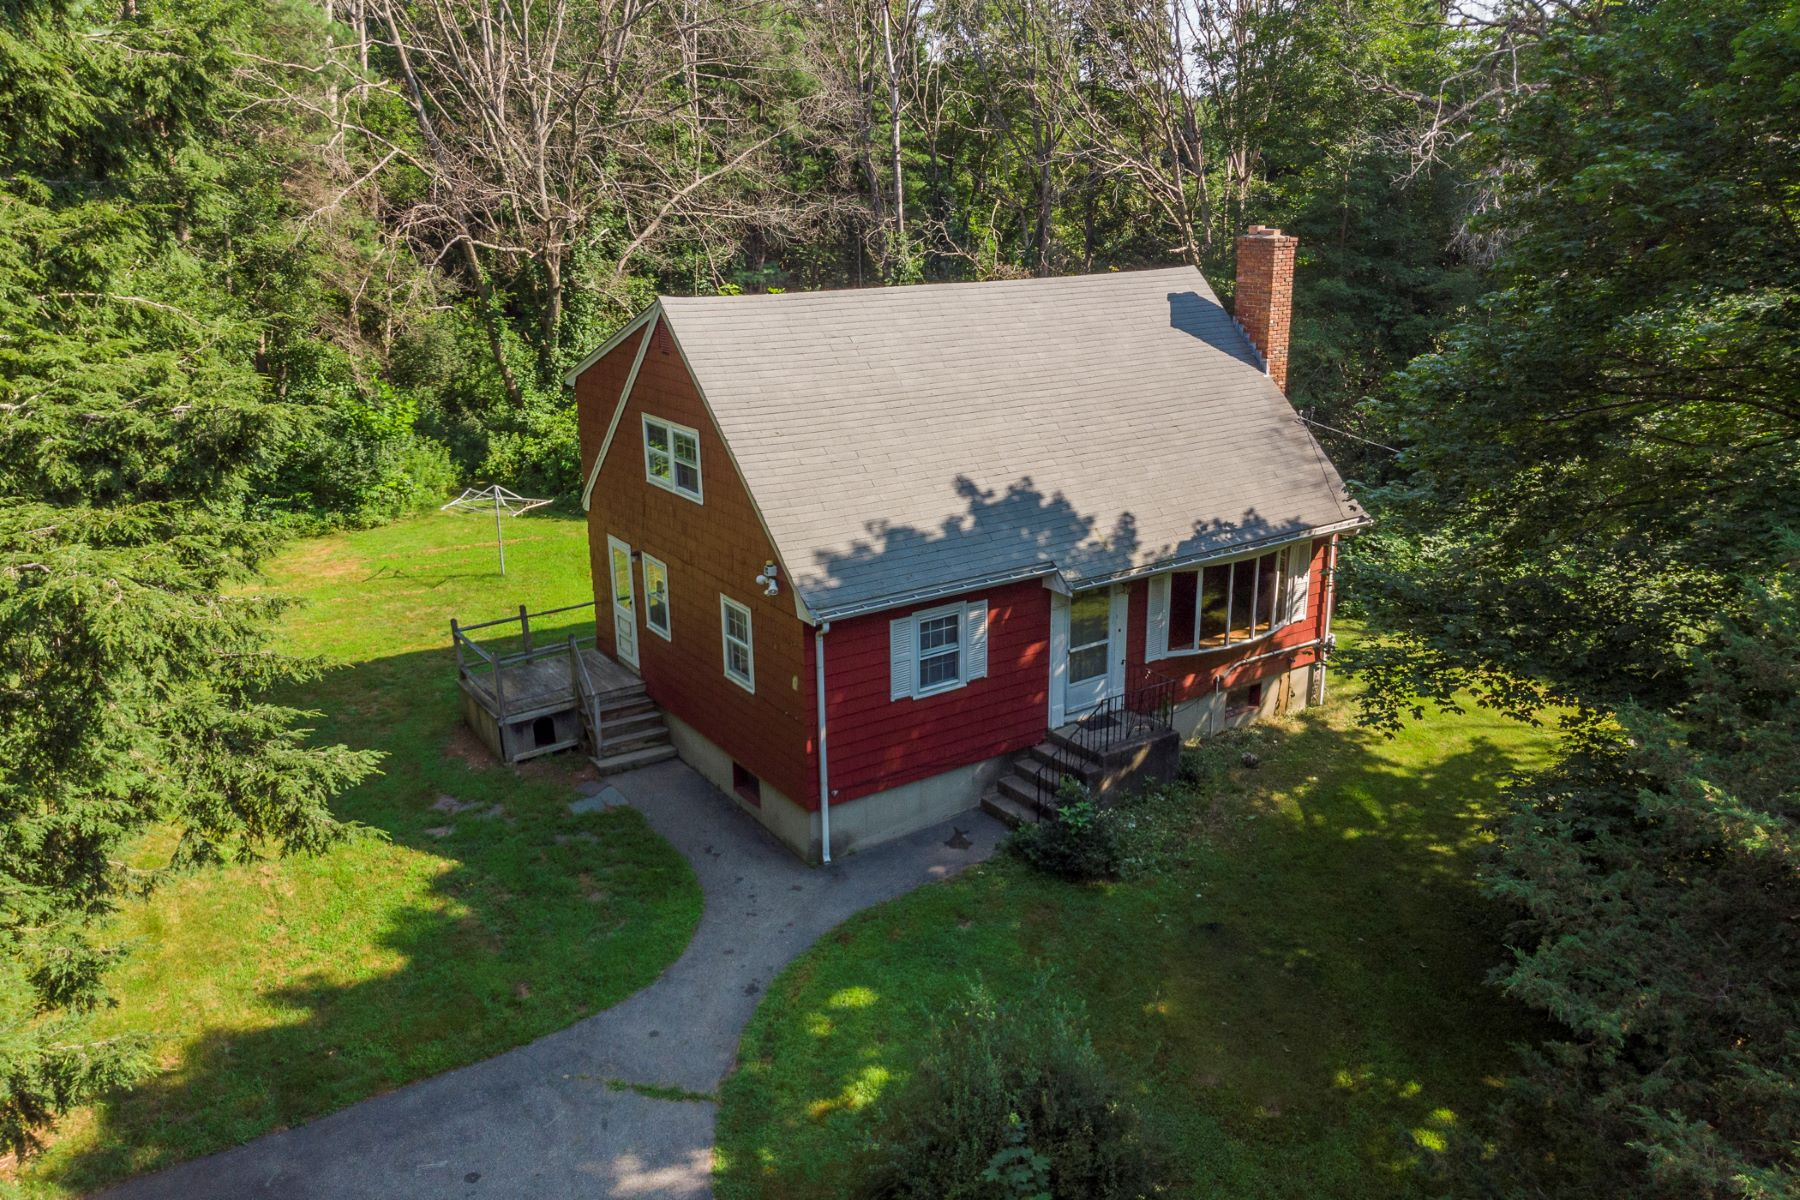 Single Family Homes for Sale at 31 Dudley Road, Billerica 31 Dudley Rd Billerica, Massachusetts 01821 United States